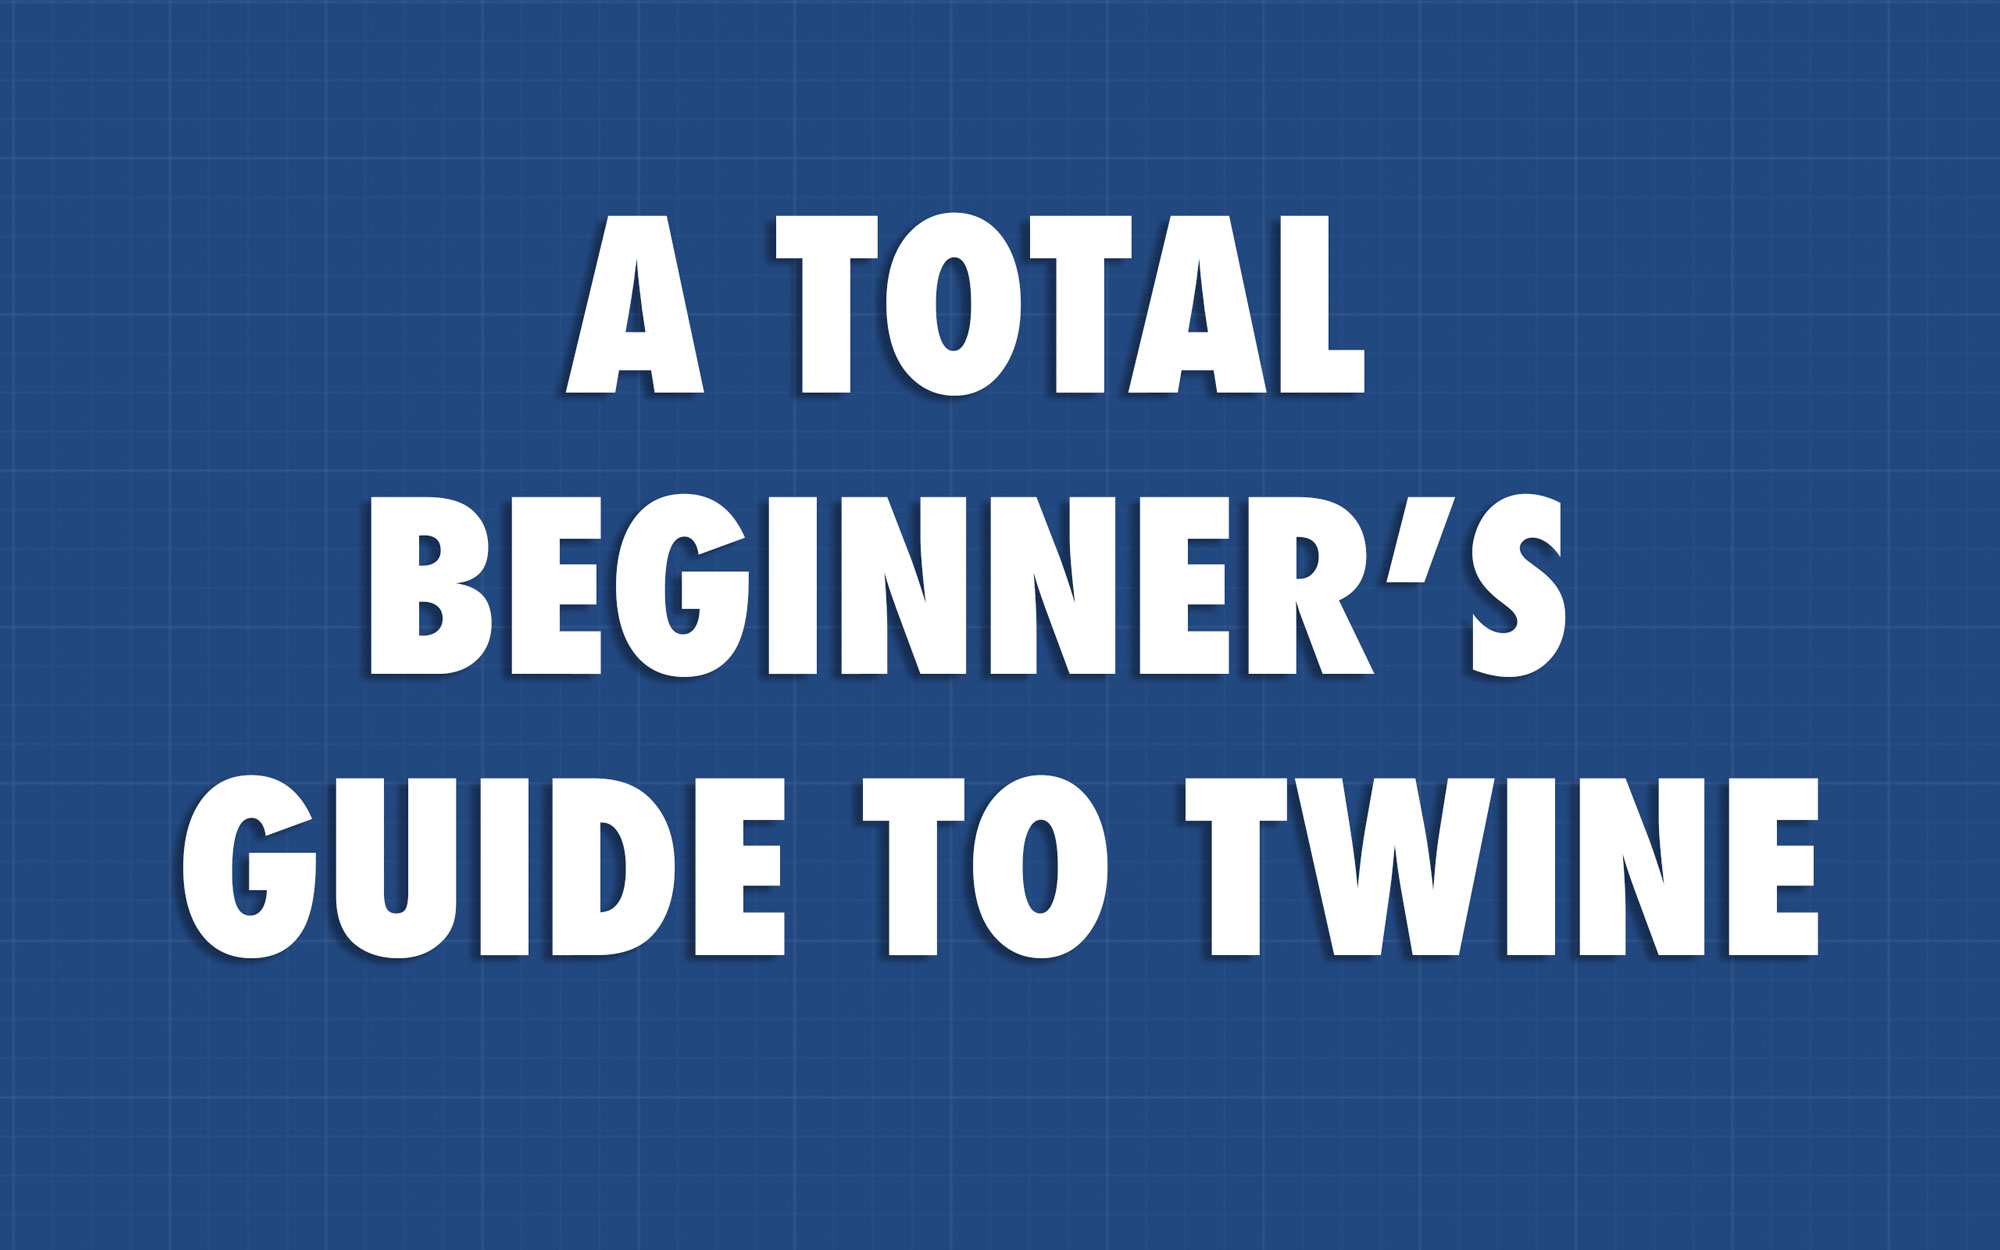 A Total Beginner's Guide to Twine 2.0